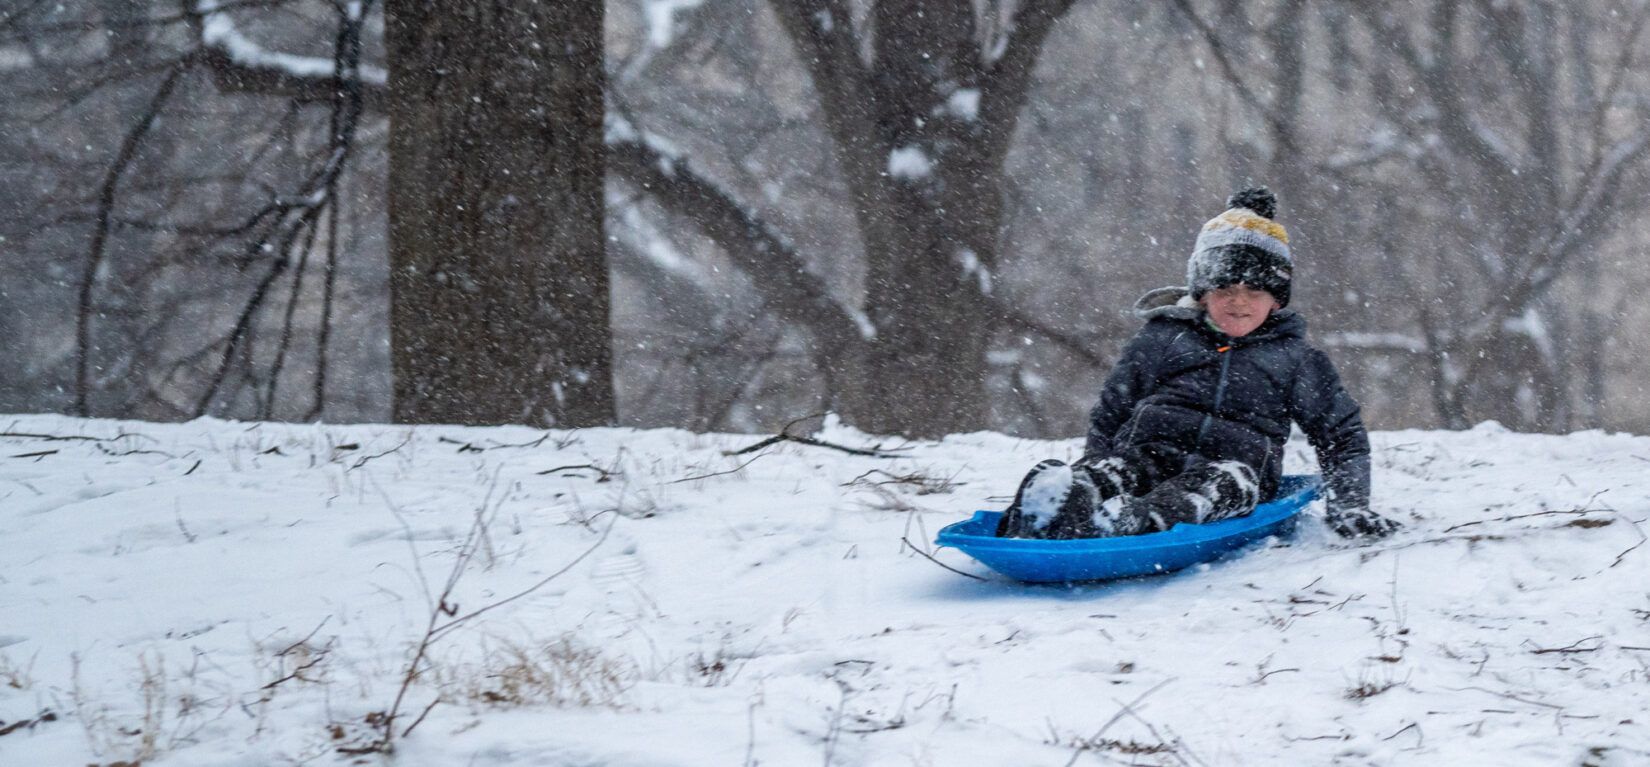 A boy on a blue sled in heavy snow